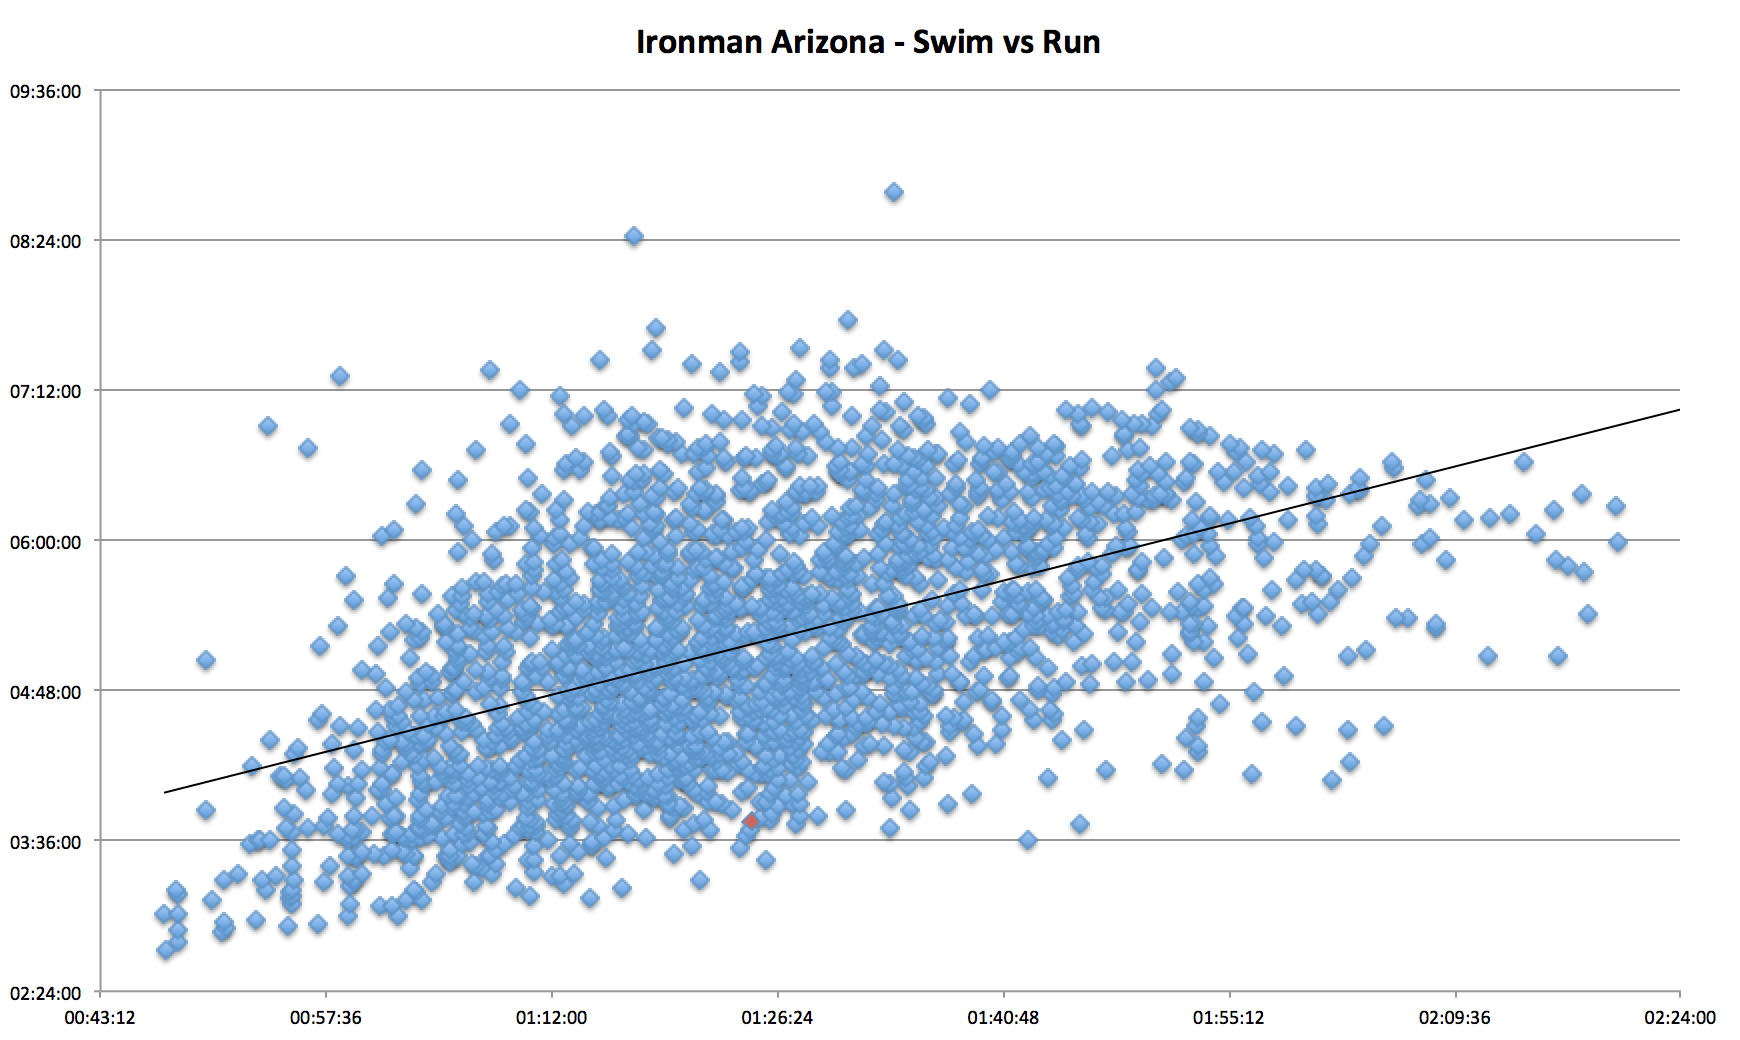 ironman_arizona_swim_vs_run